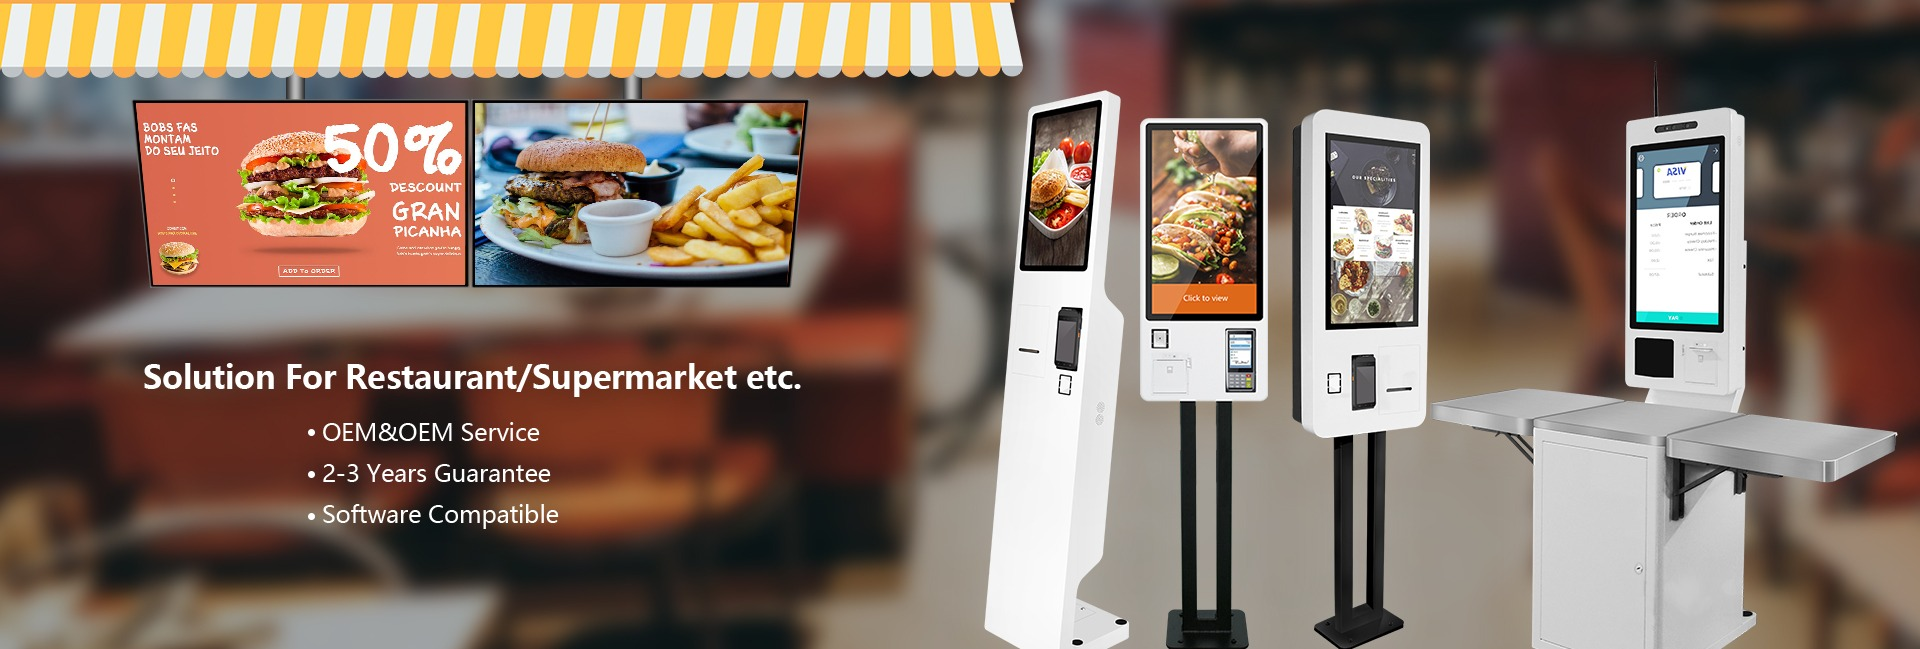 restaurant epos Digital Screens and self order kiosk